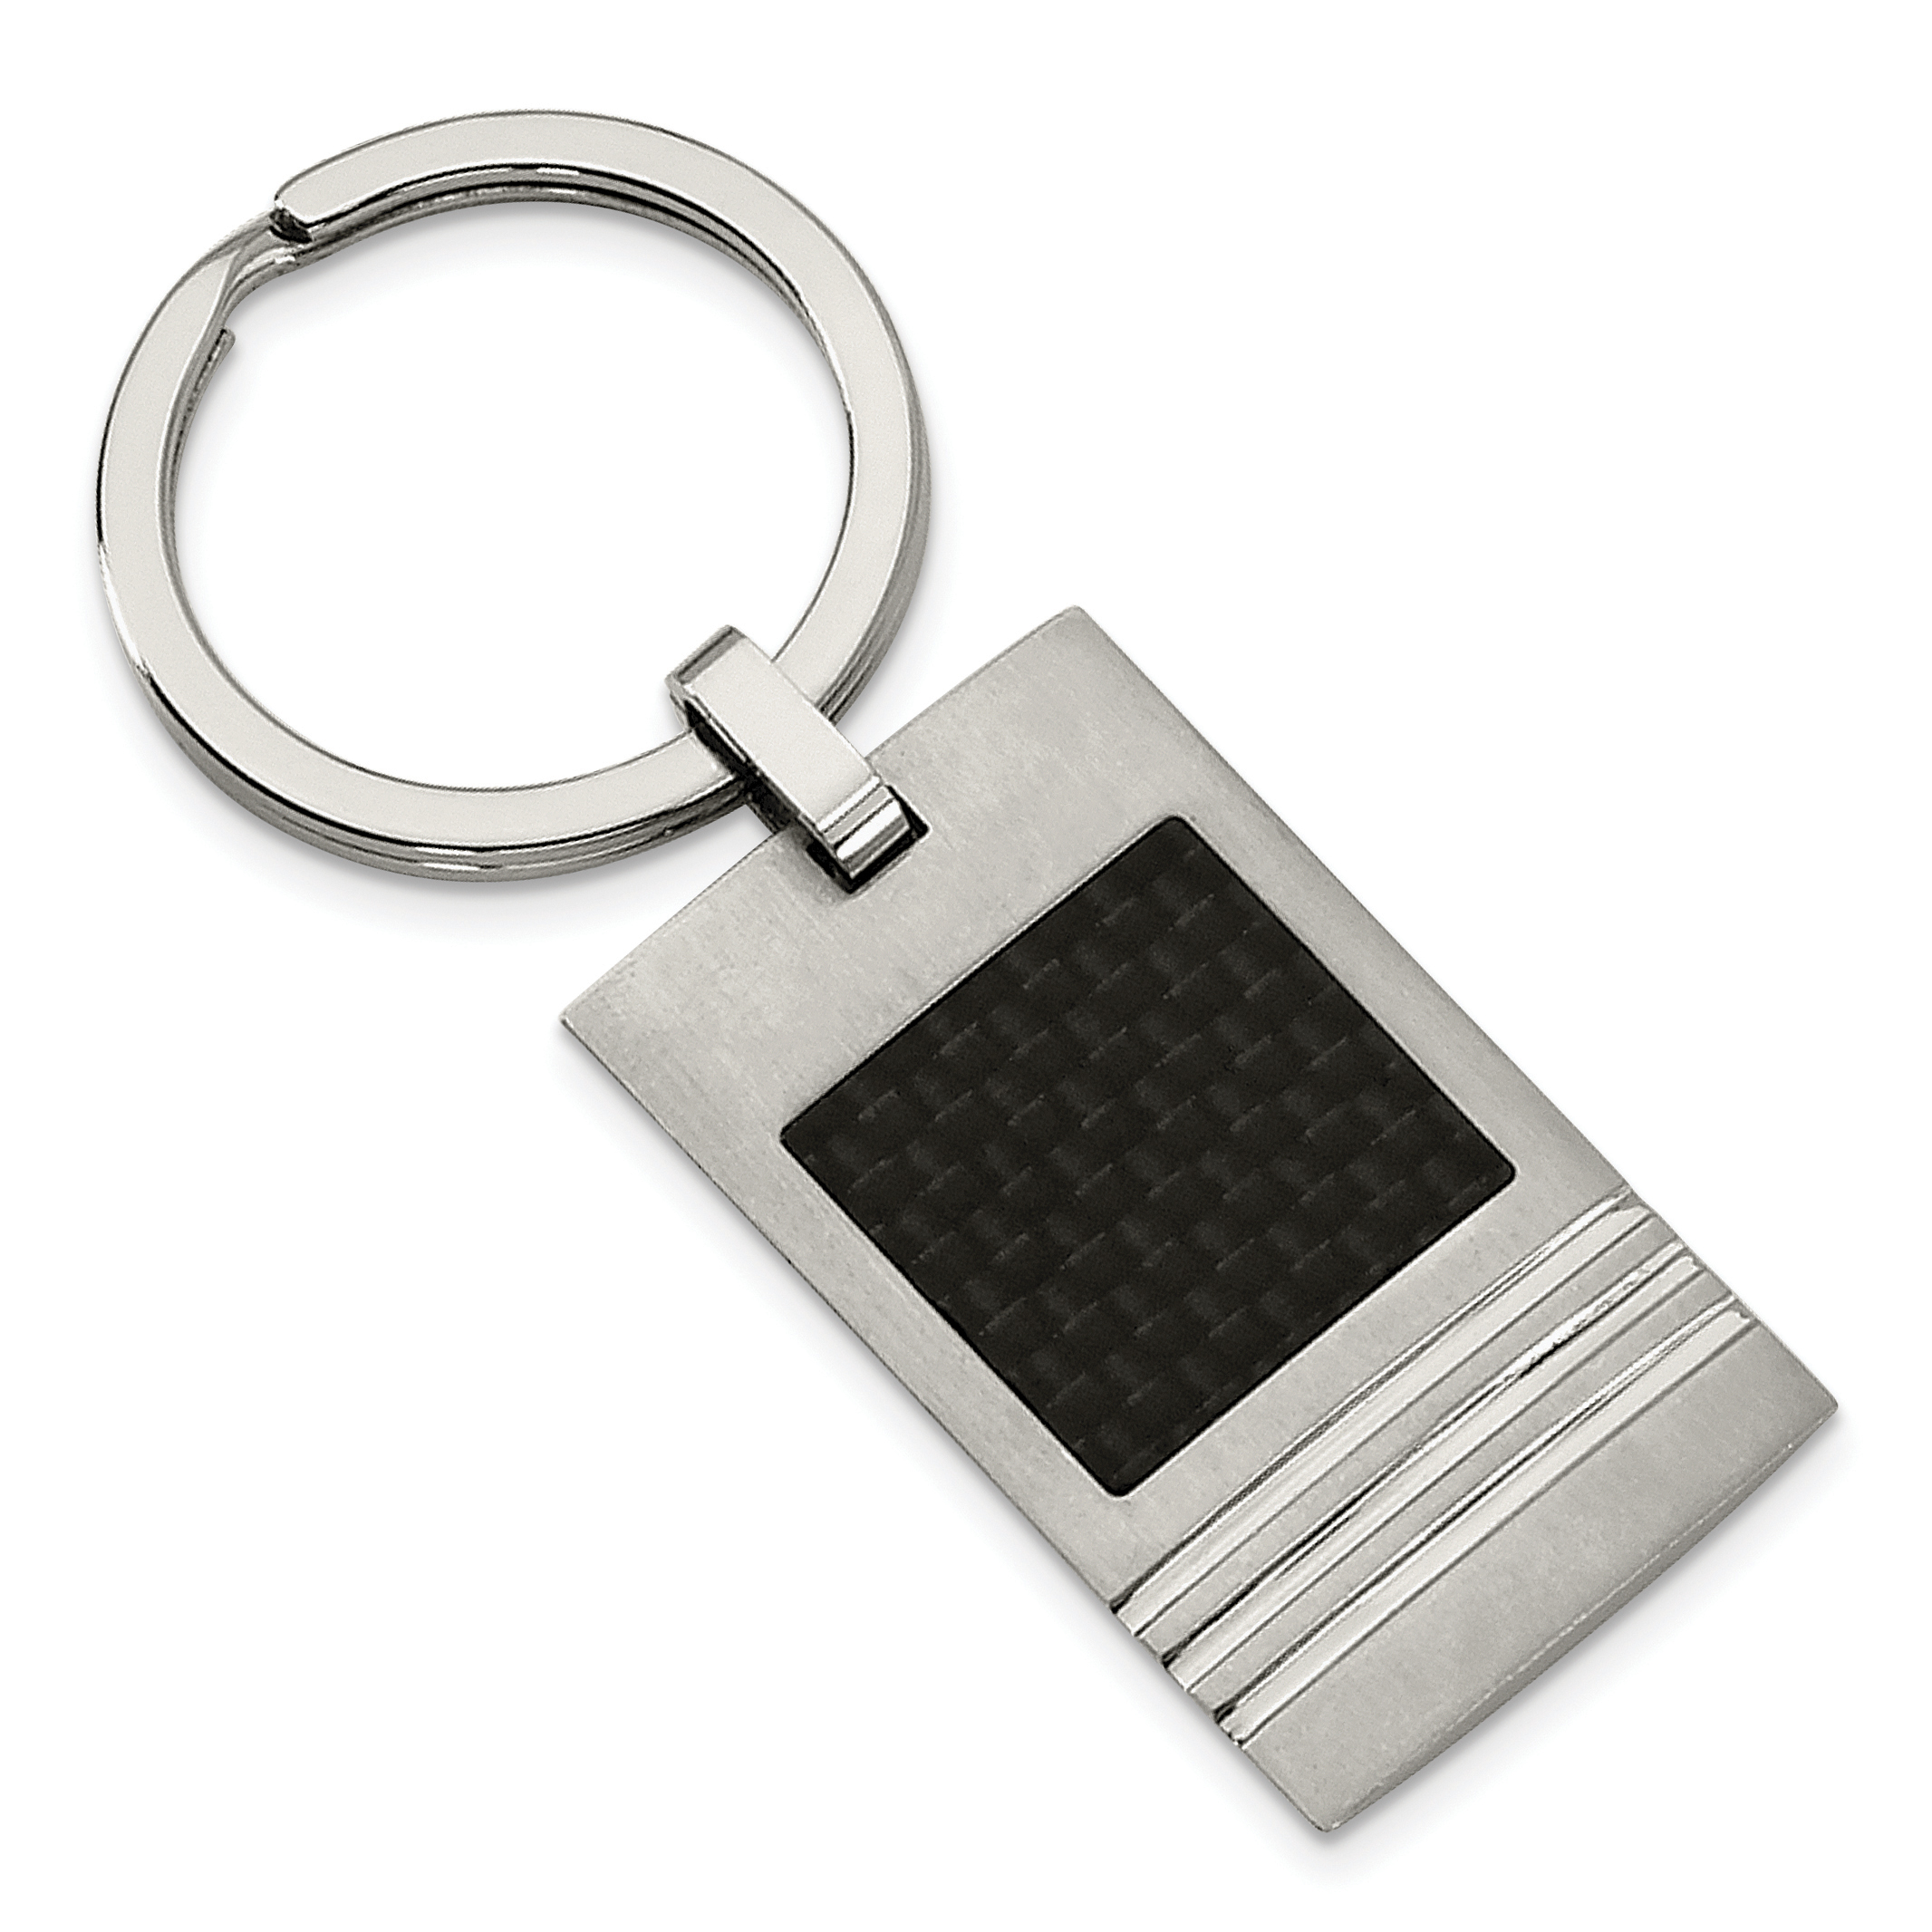 Stainless Steel Brushed Black Carbon Fiber Inlay Key Ring SRK113 by Chisel